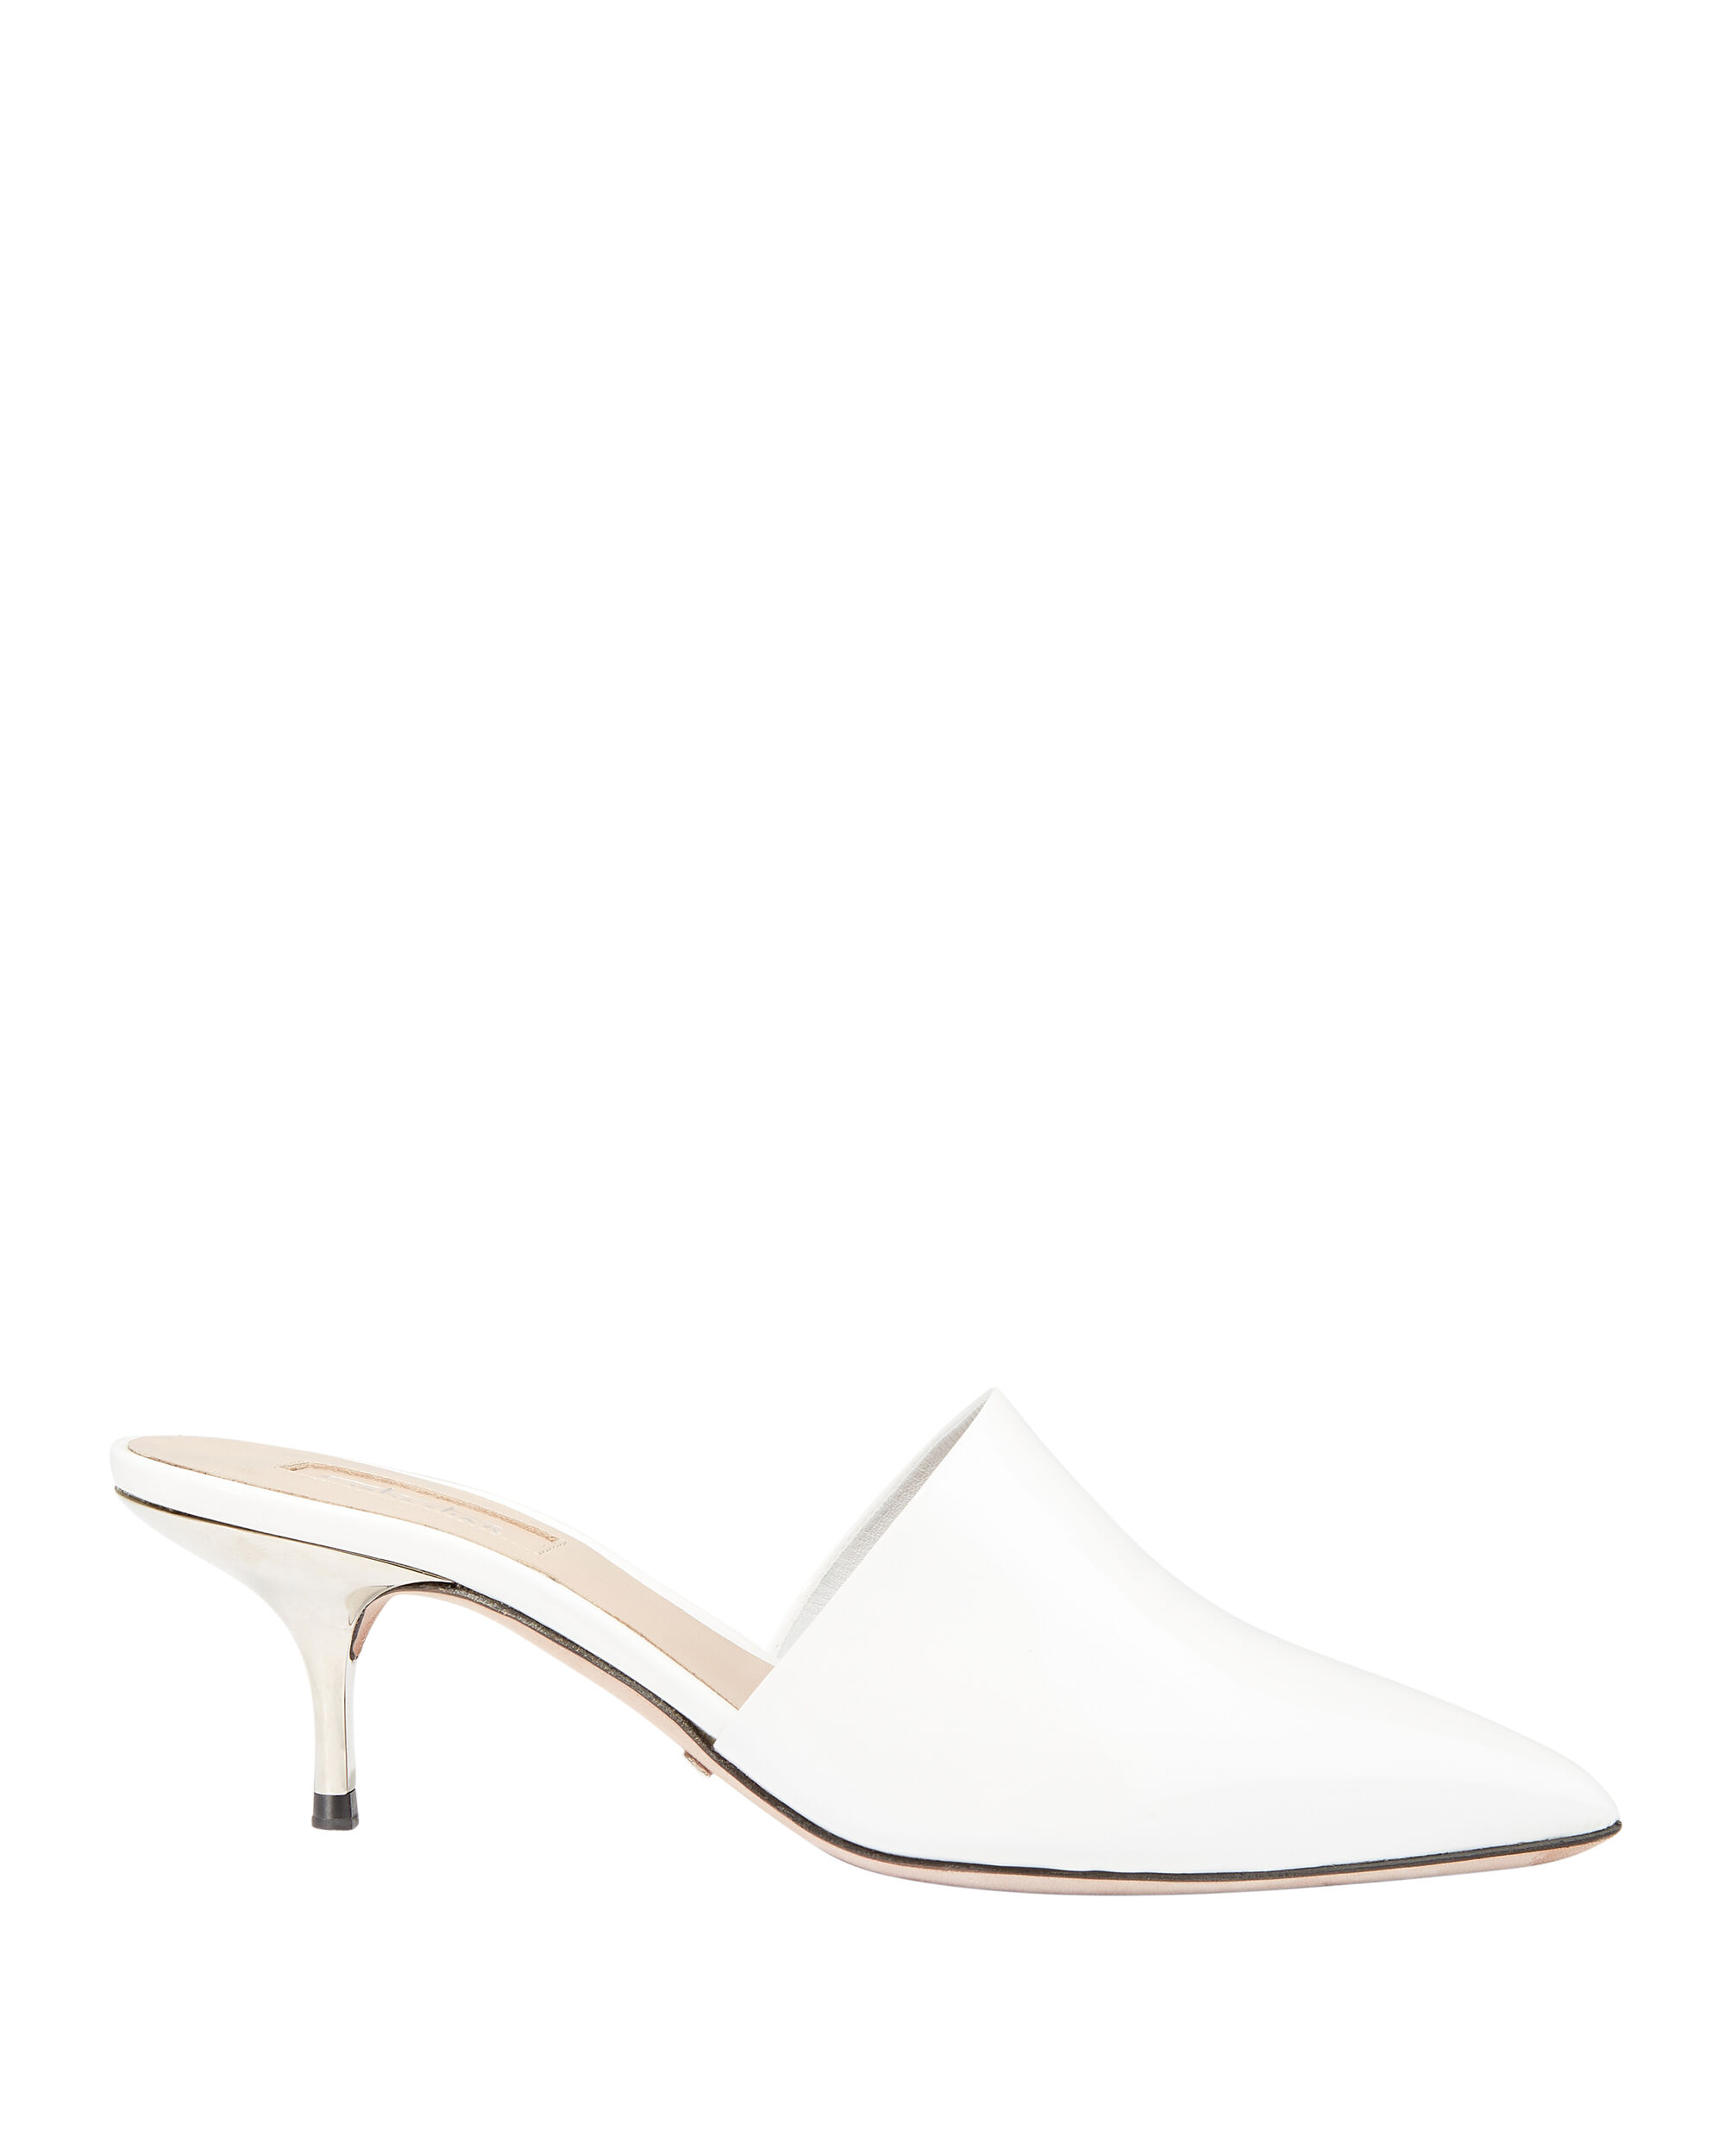 White Leather Silver Kitten Heel Mules, WHITE, hi-res